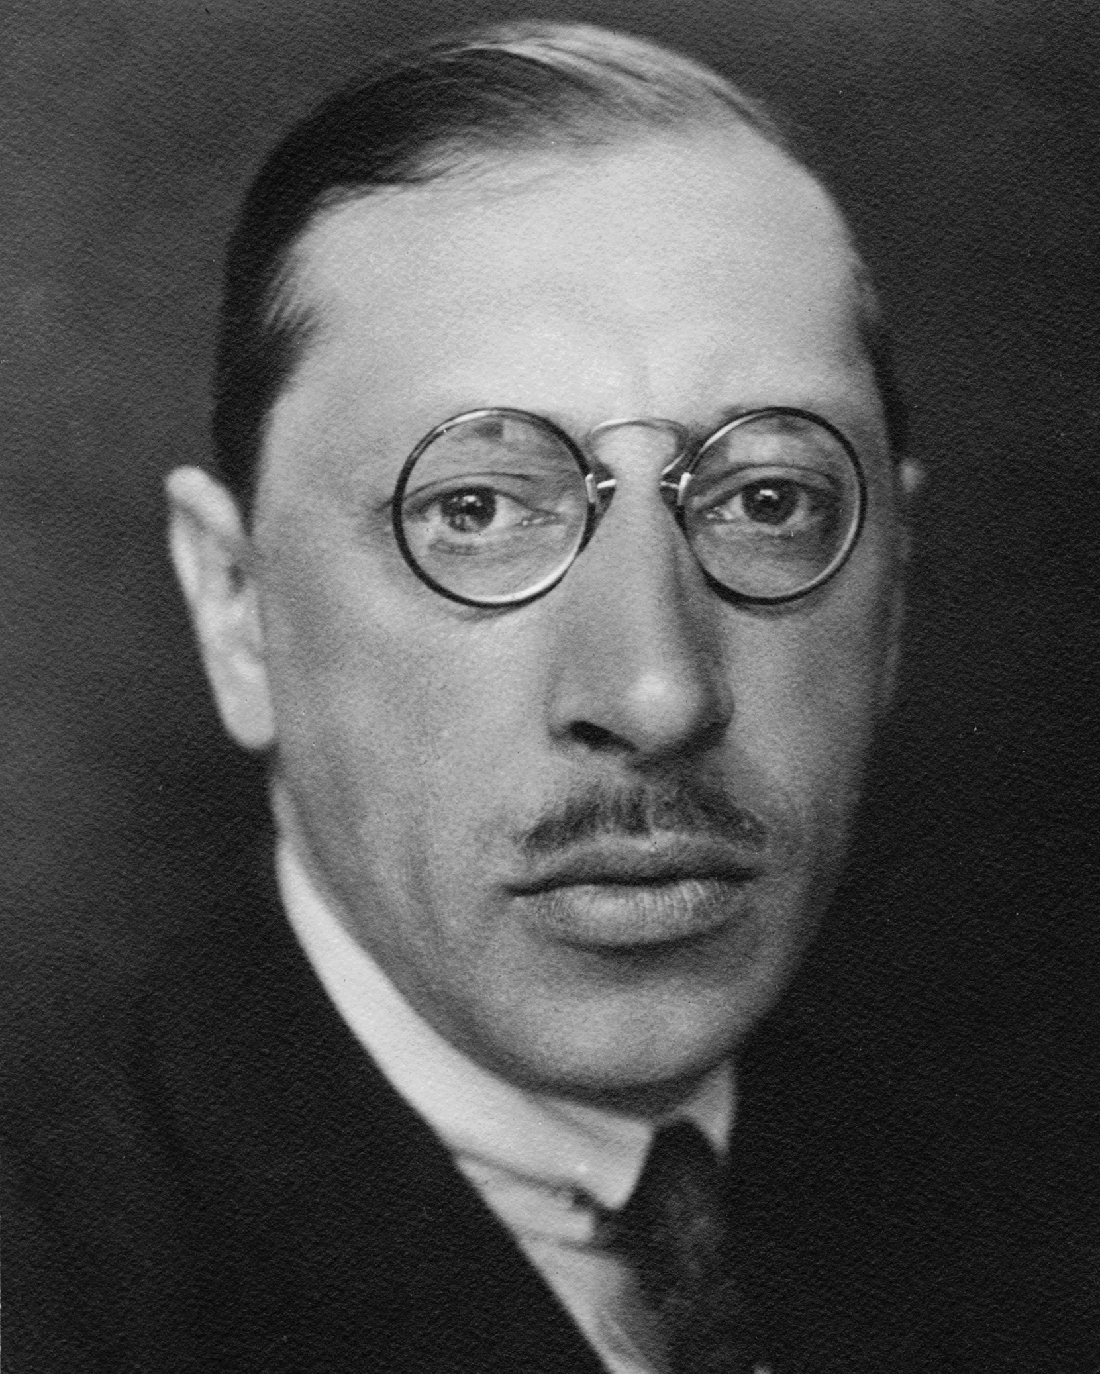 An image of Igor Stravinsky, a man with a melancholic expression and round glasses.